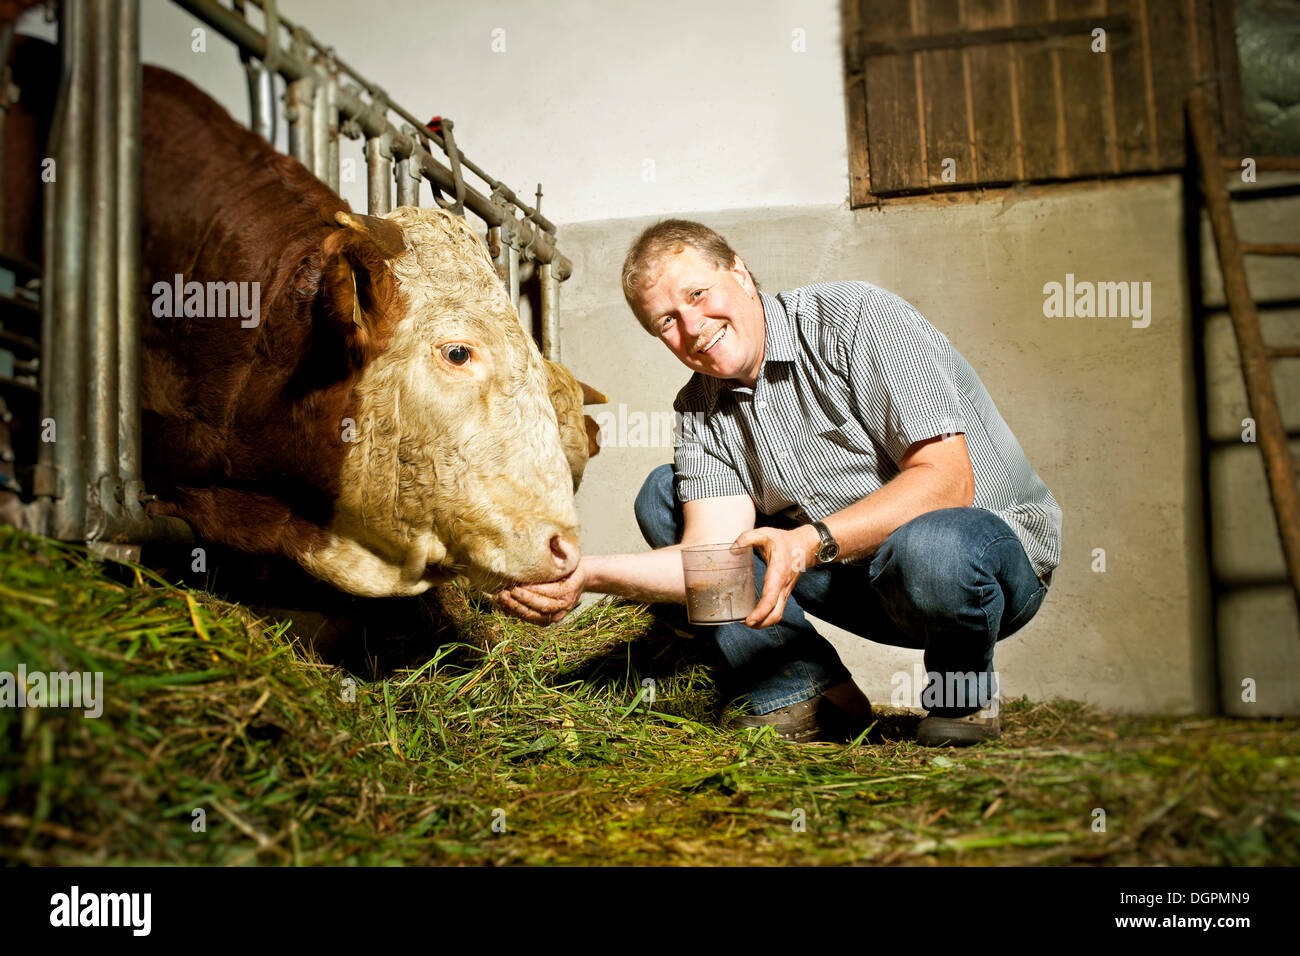 Farmer feeding a bull - Stock Image